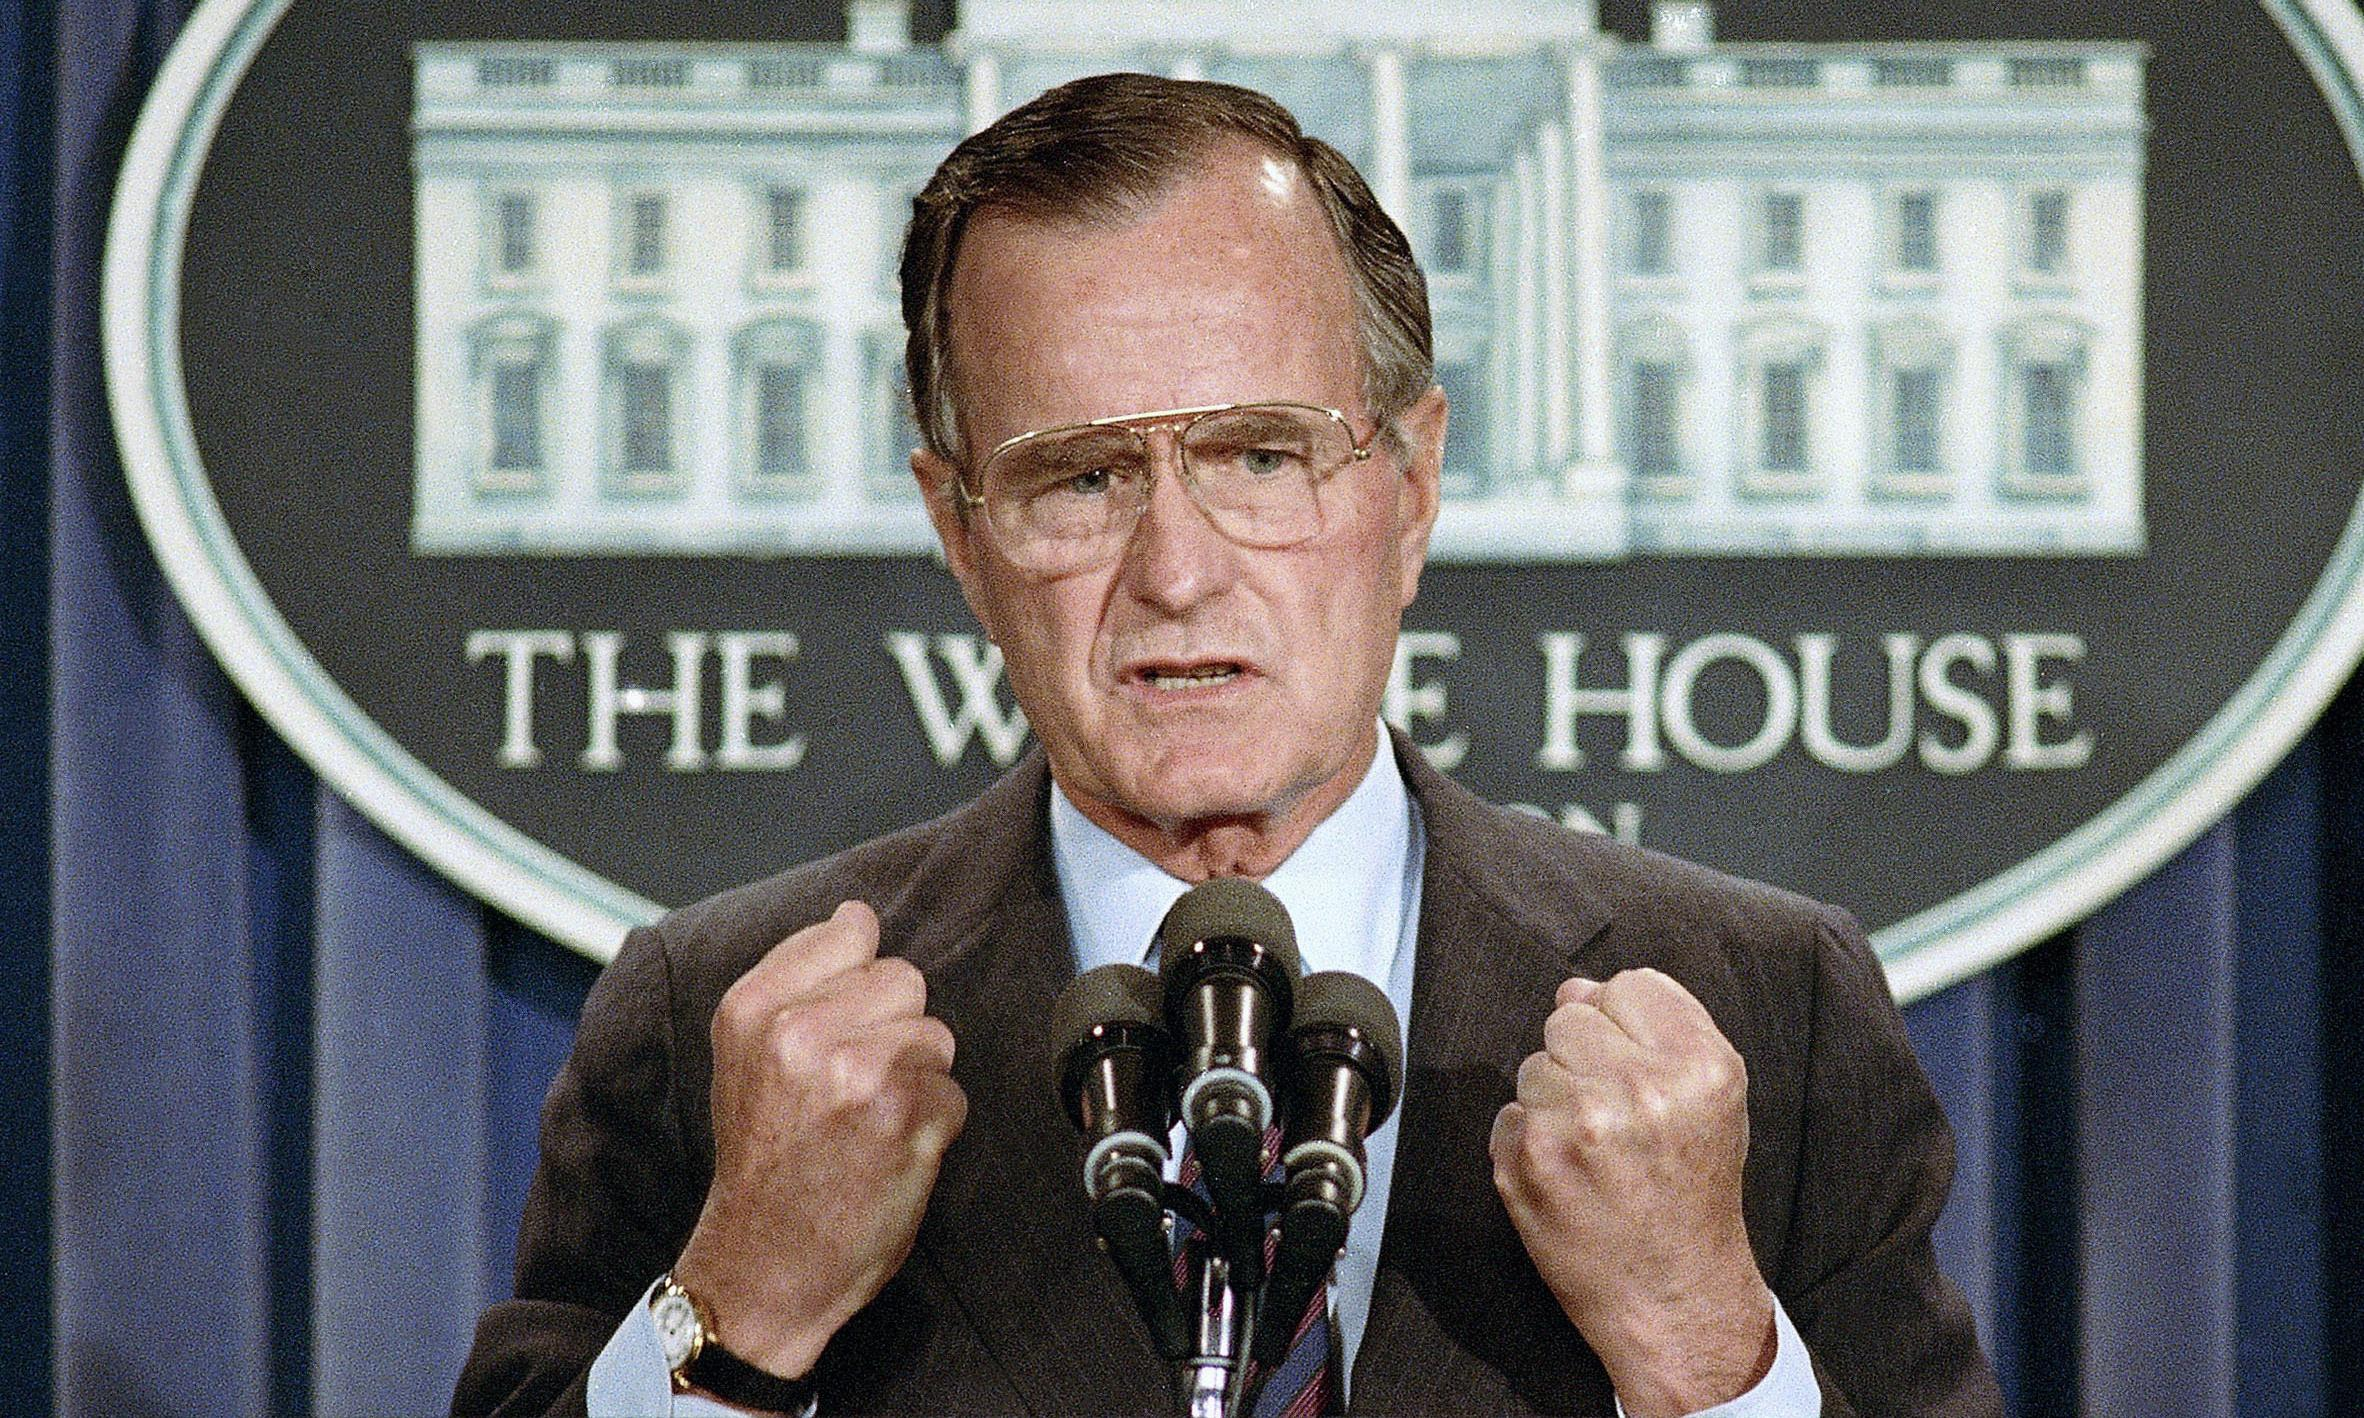 George HW Bush thought the world belonged to his family. How wrong he was